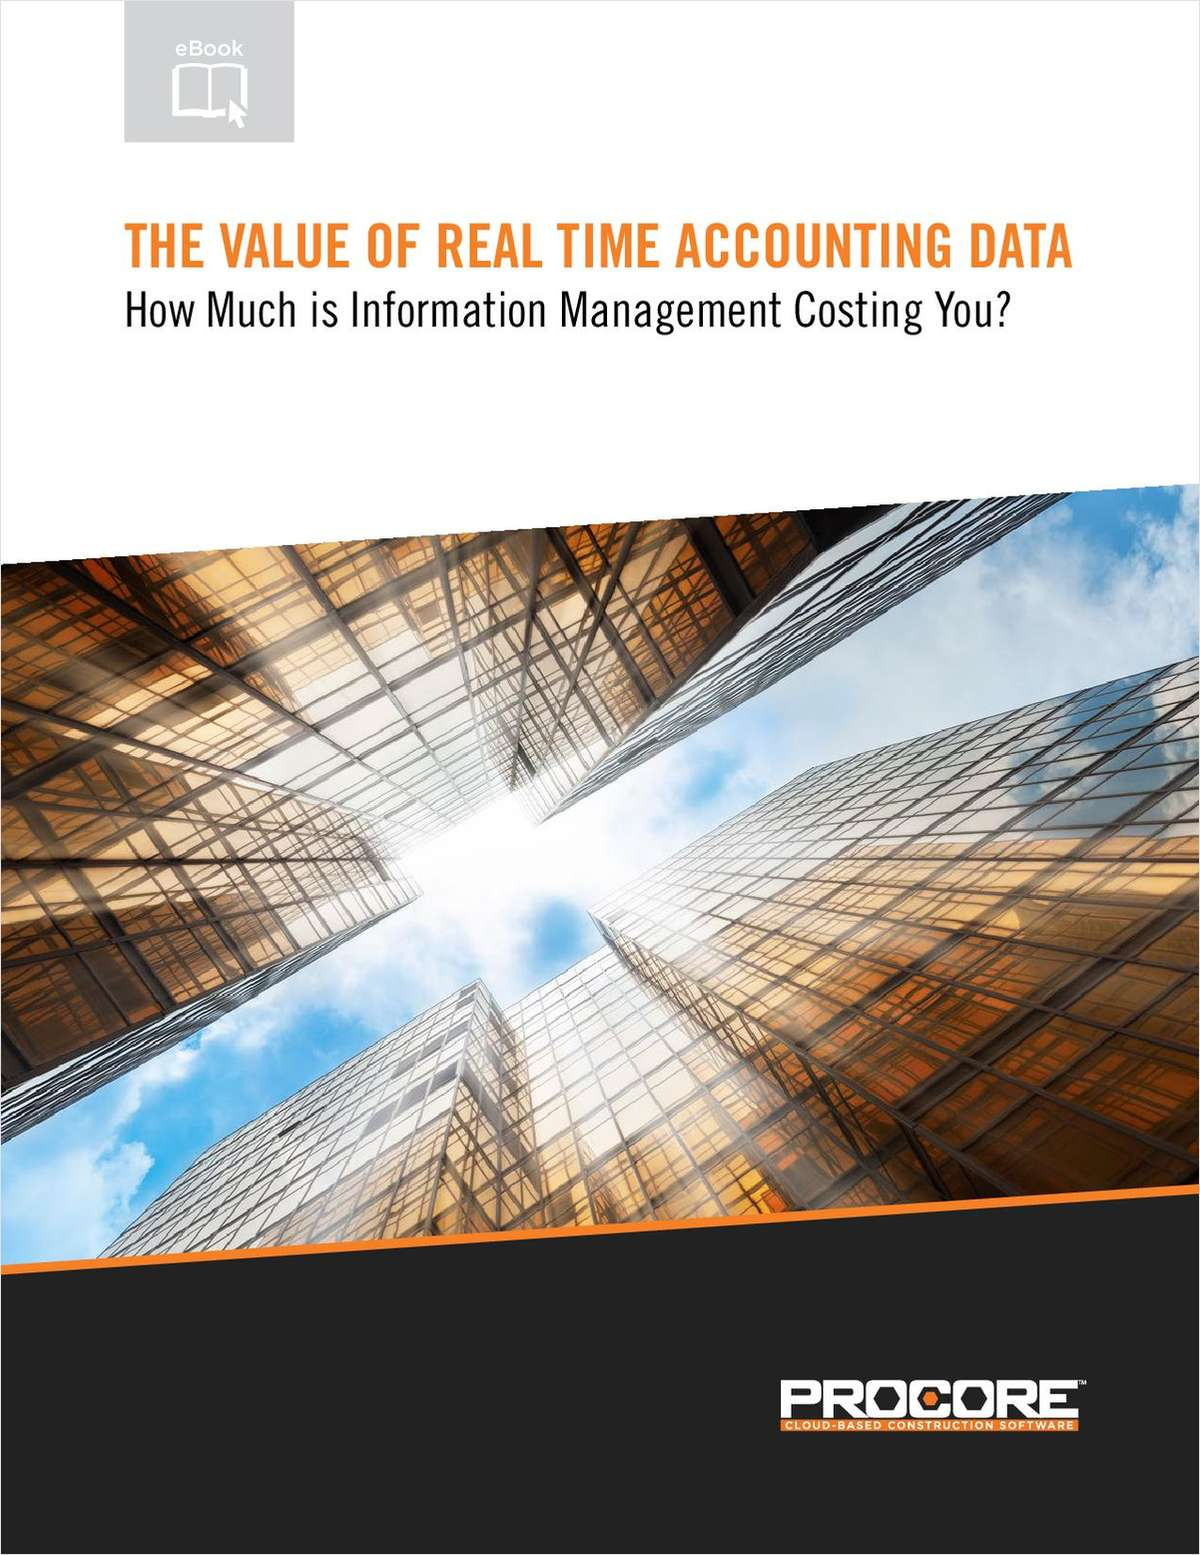 The Value of Real Time Accounting Data